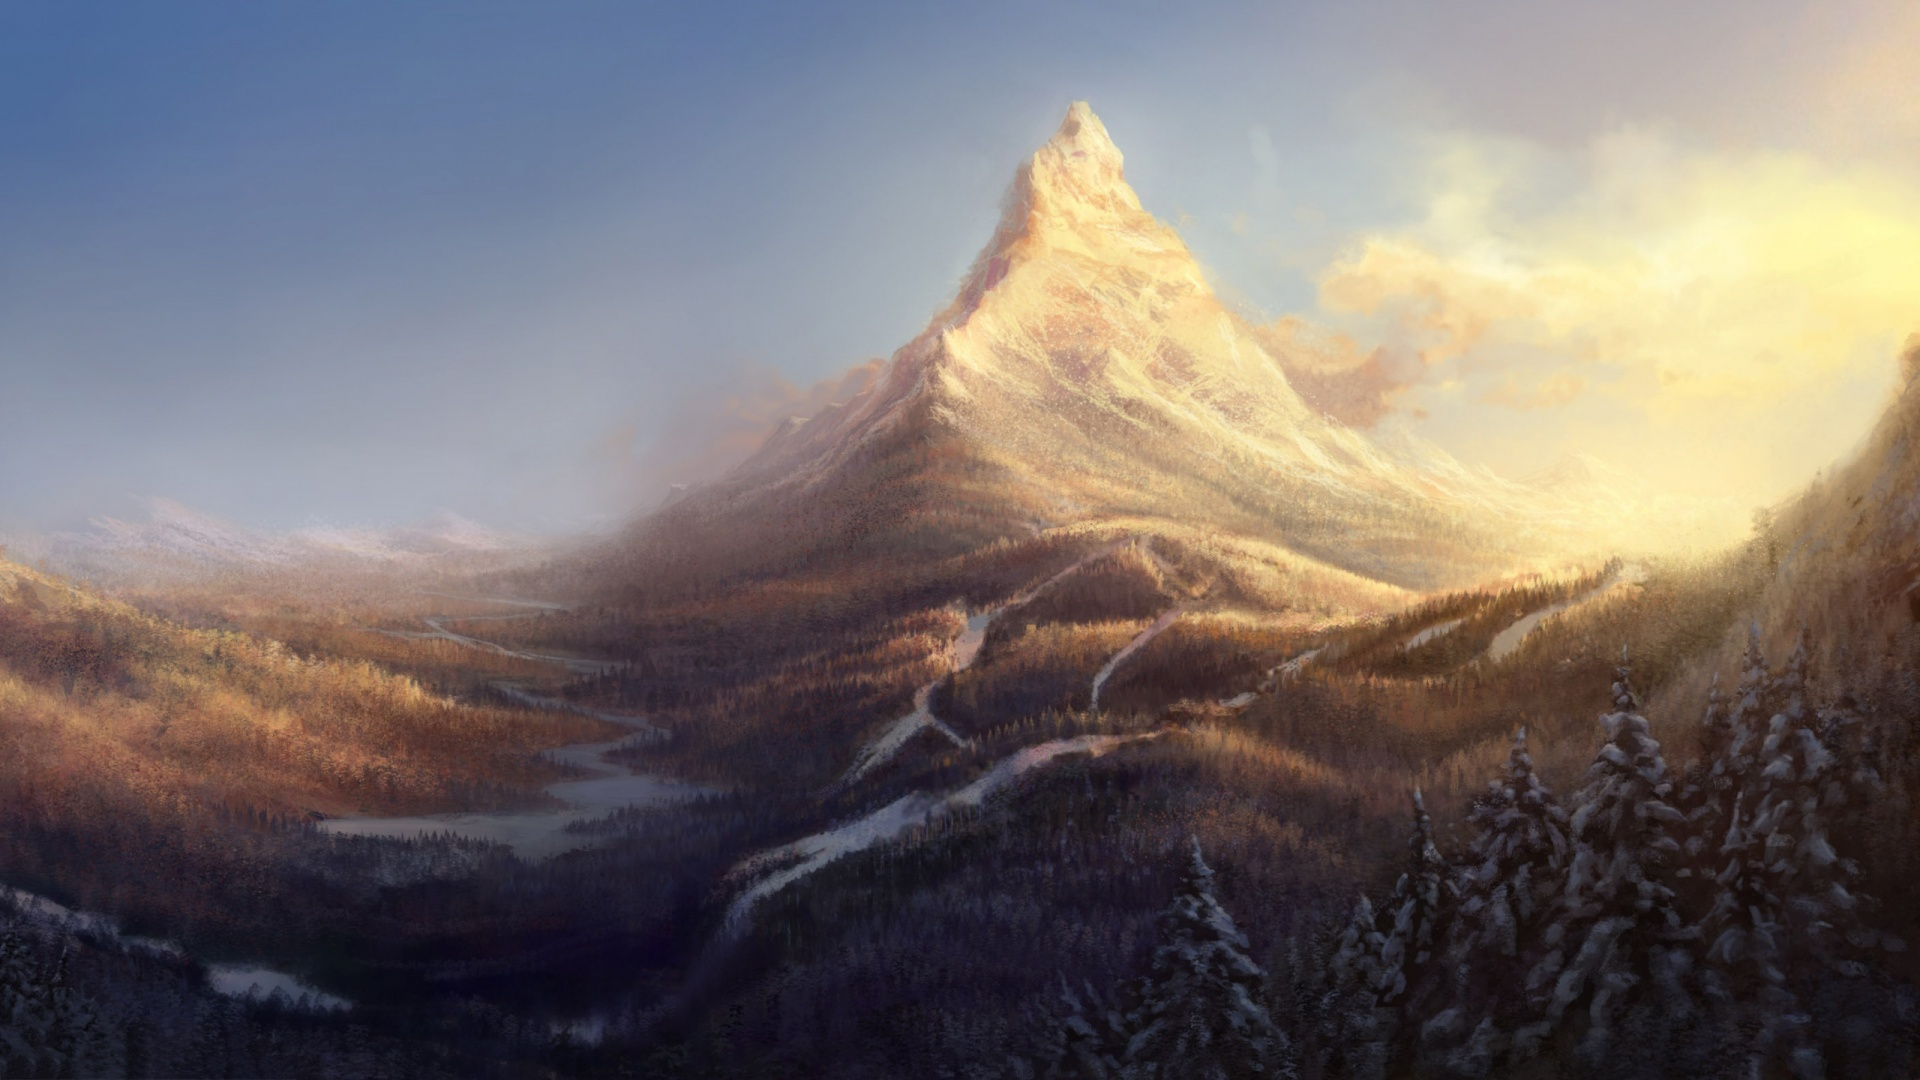 Mountain artwork